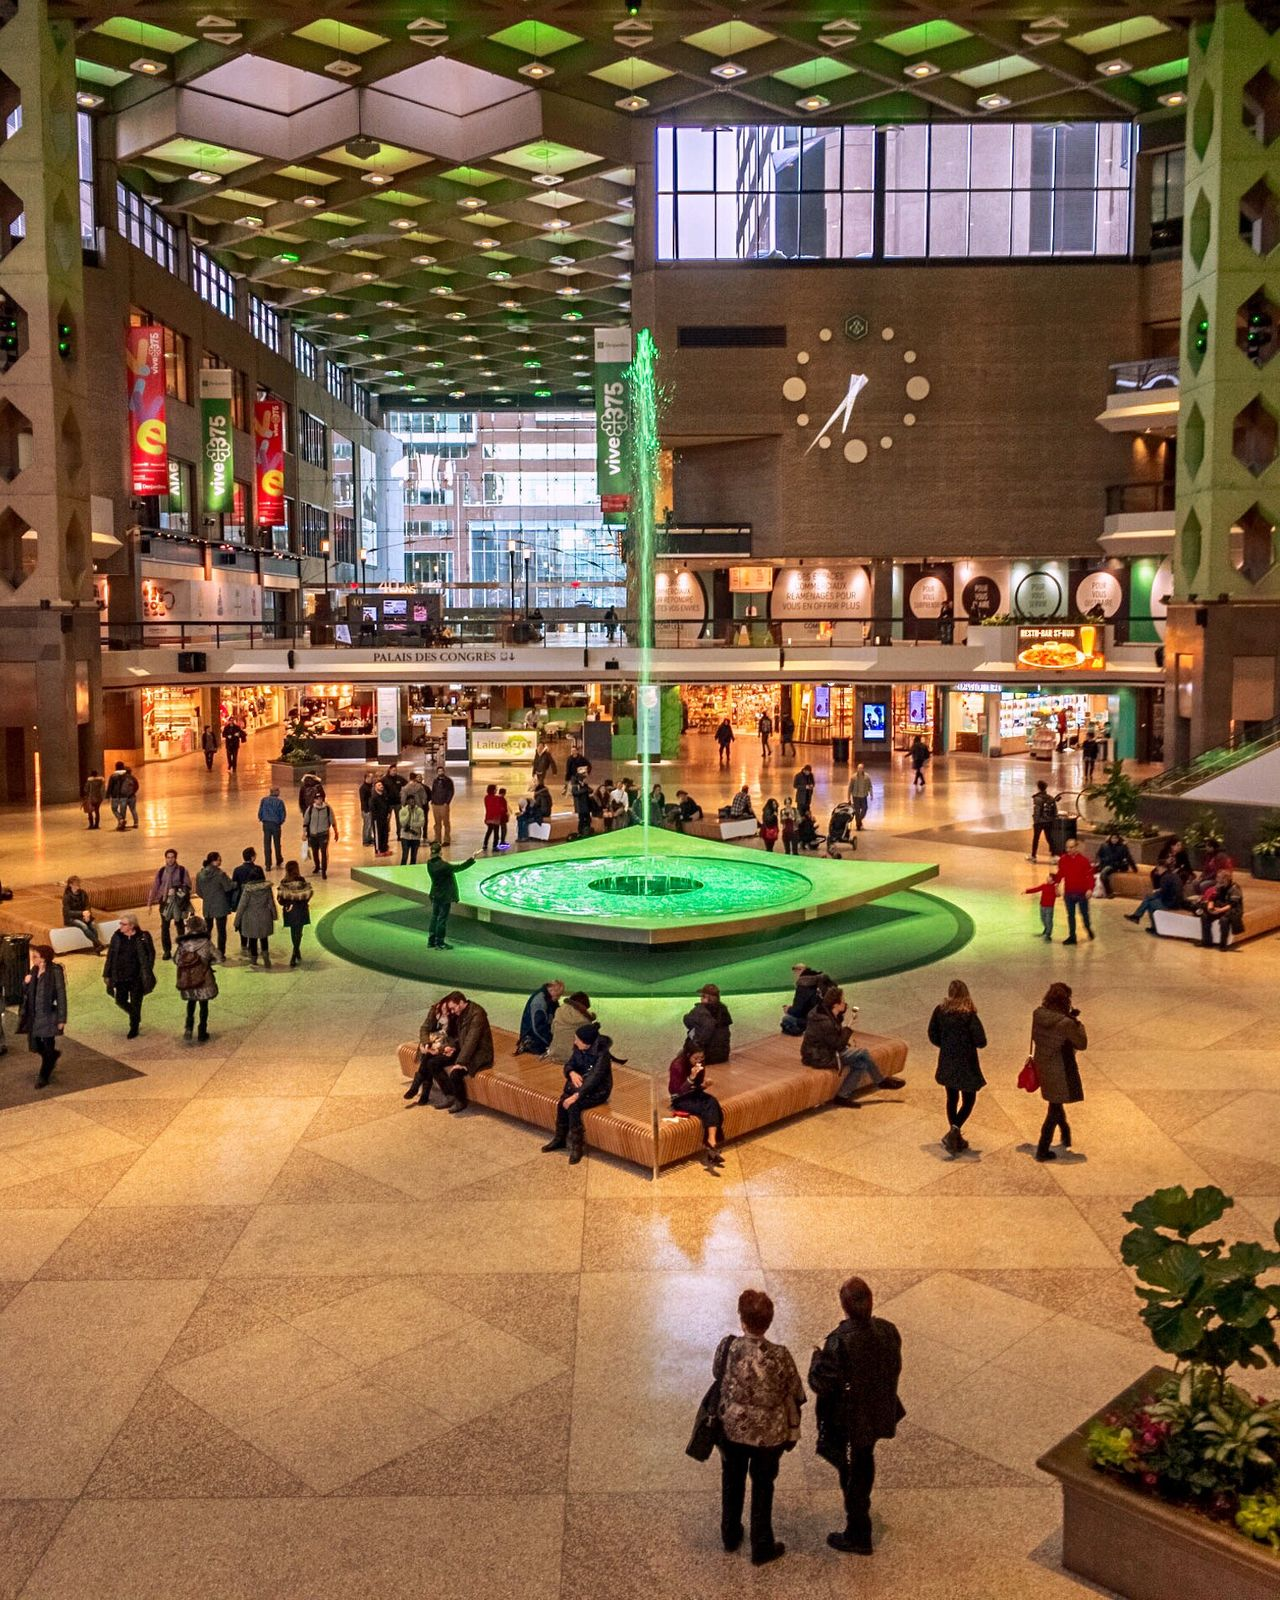 Large Group Of People High Angle View Real People Women Shopping Mall Leisure Activity Men Indoors  Architecture City Life Built Structure City Adults Only People Adult Only Women Pool Table Day Fountain Green Color